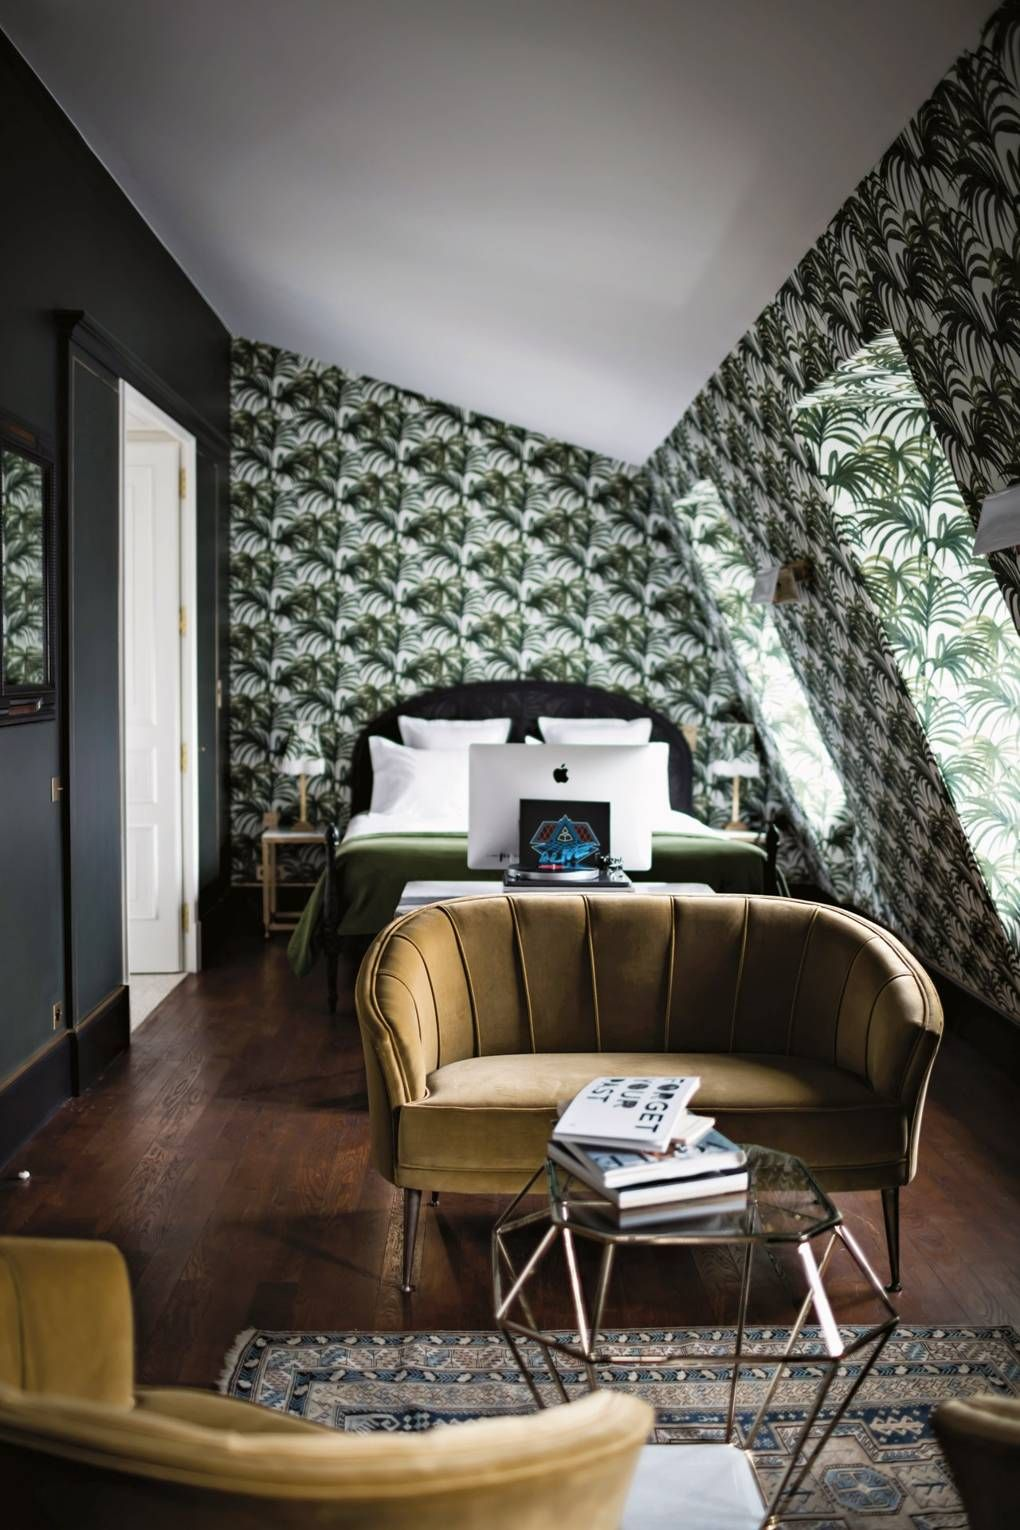 Romantic Hotel Room Ideas: 137 Astoundingly Beautiful And Romantic Hotel Rooms (With